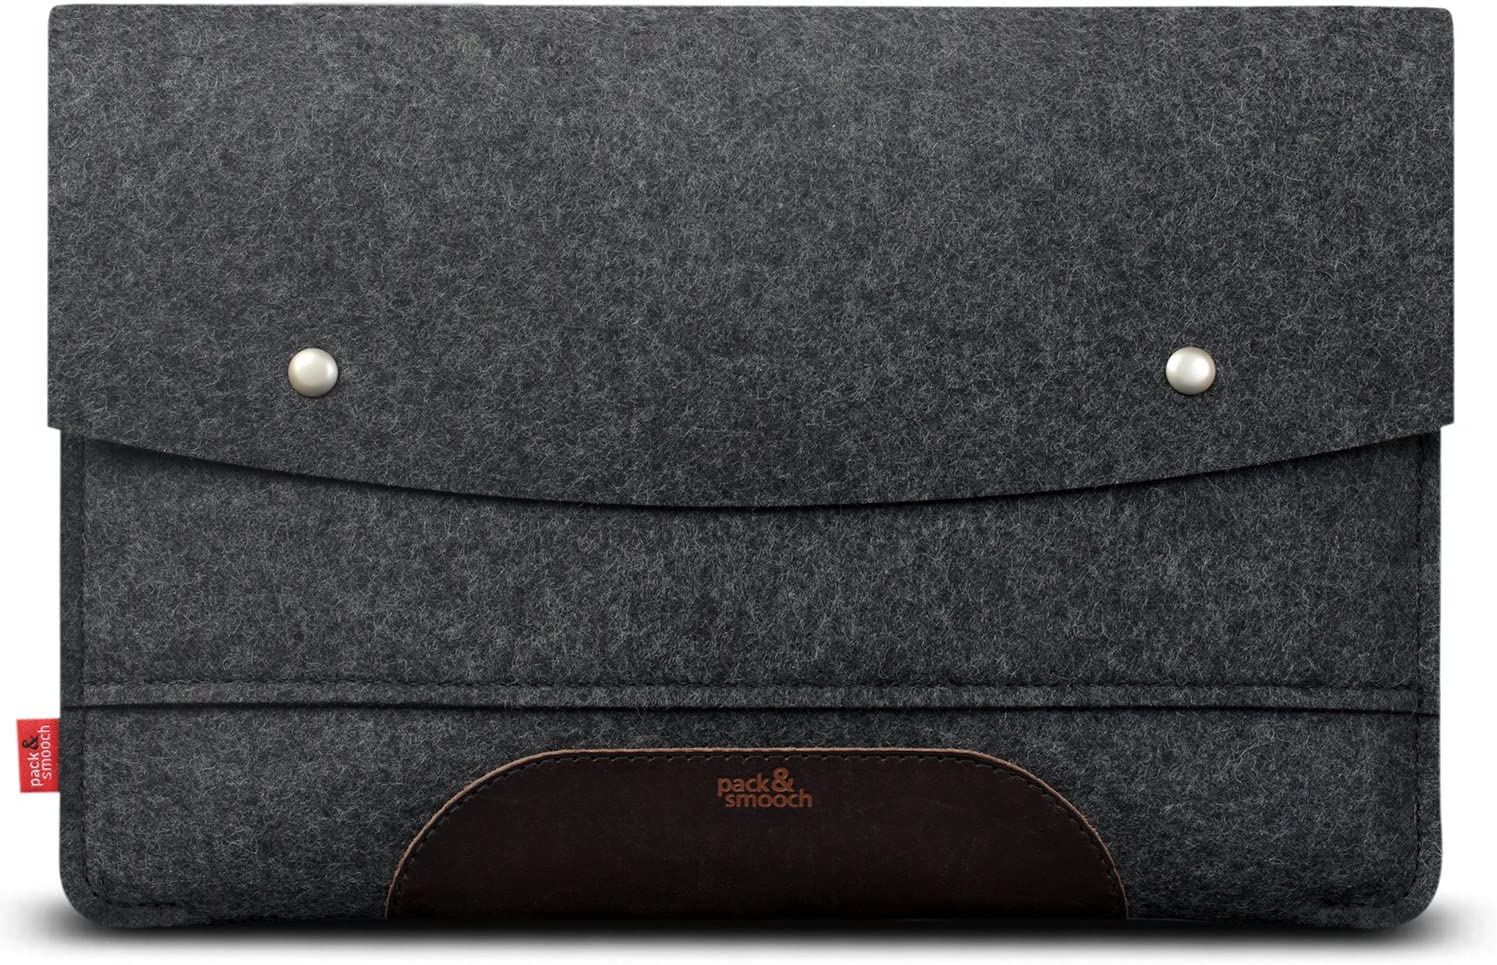 "Pack & Smooch for iPad Pro 11"" / Air 10.9"" with Magic Keyboard Case Sleeve Cover - 100% Wool Felt and Vegetable Tanned Leather - Dark Gray/Dark Brown"